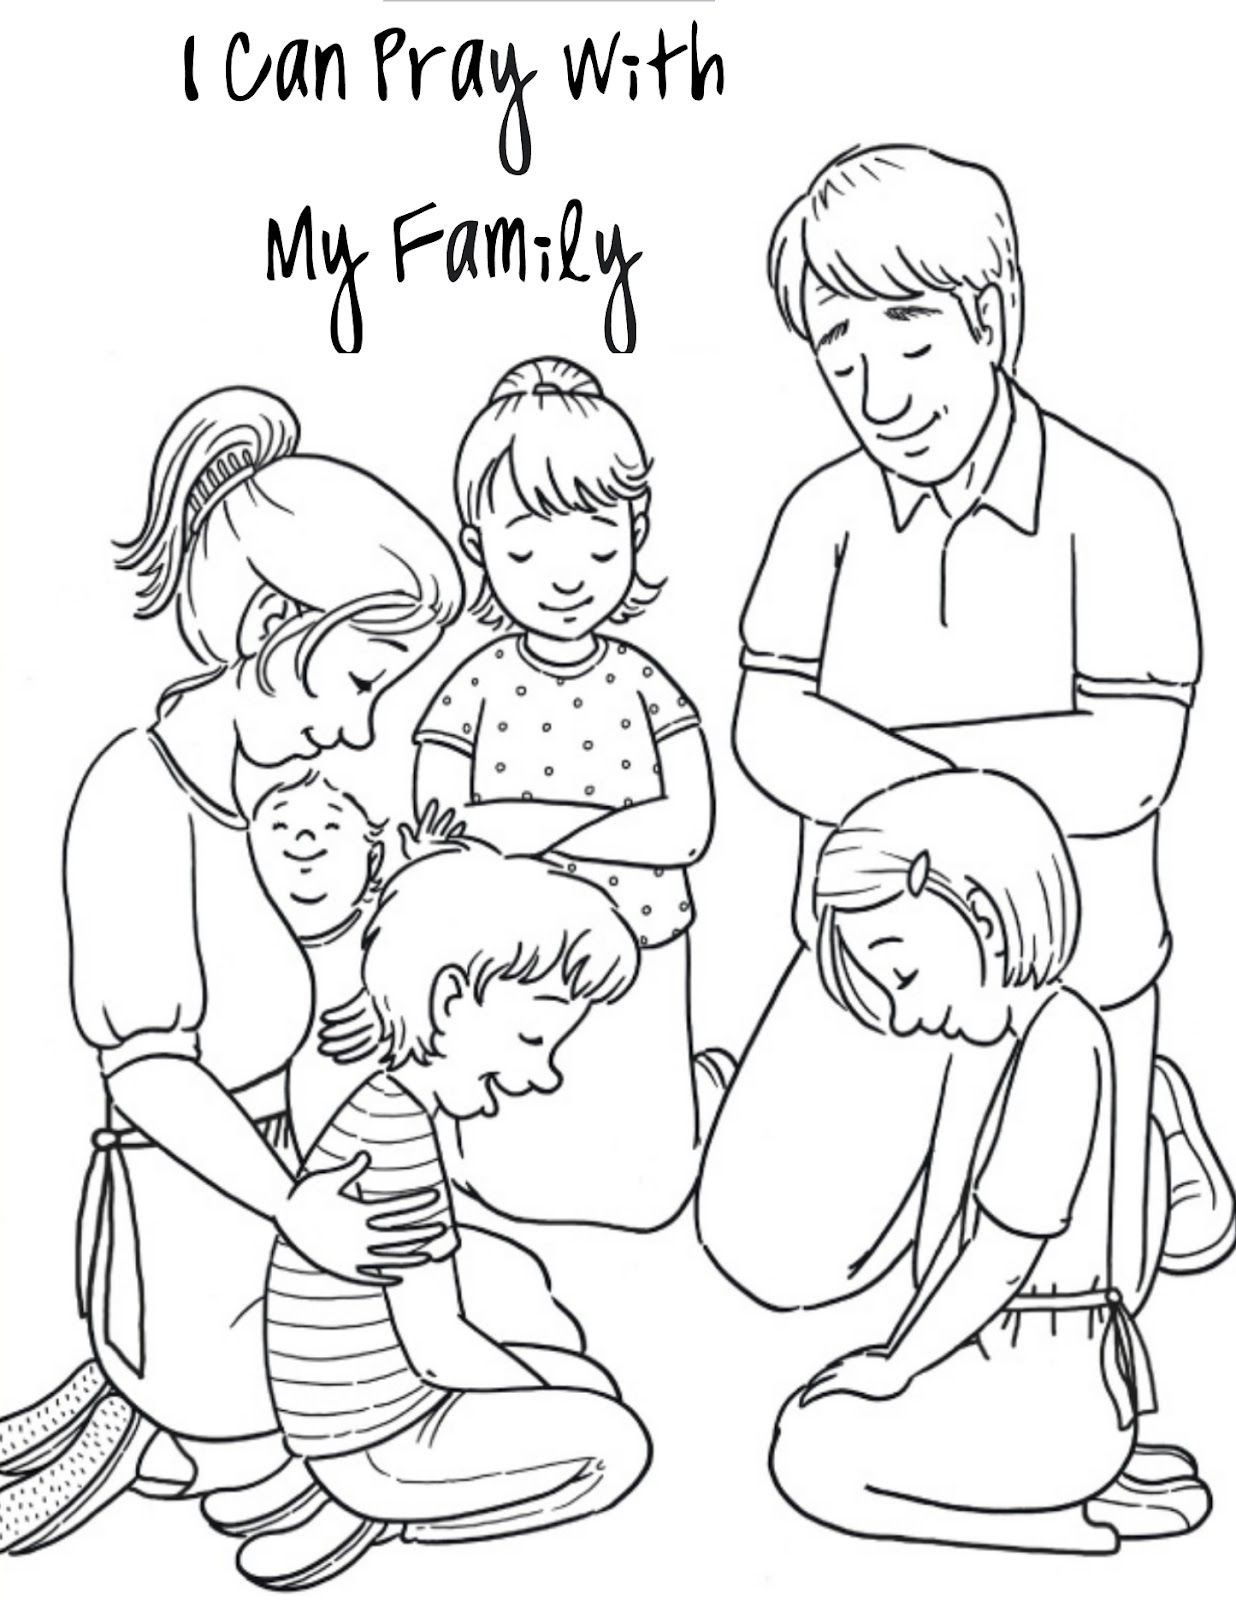 Singing Sister Sunday School Coloring Pages Lds Coloring Pages